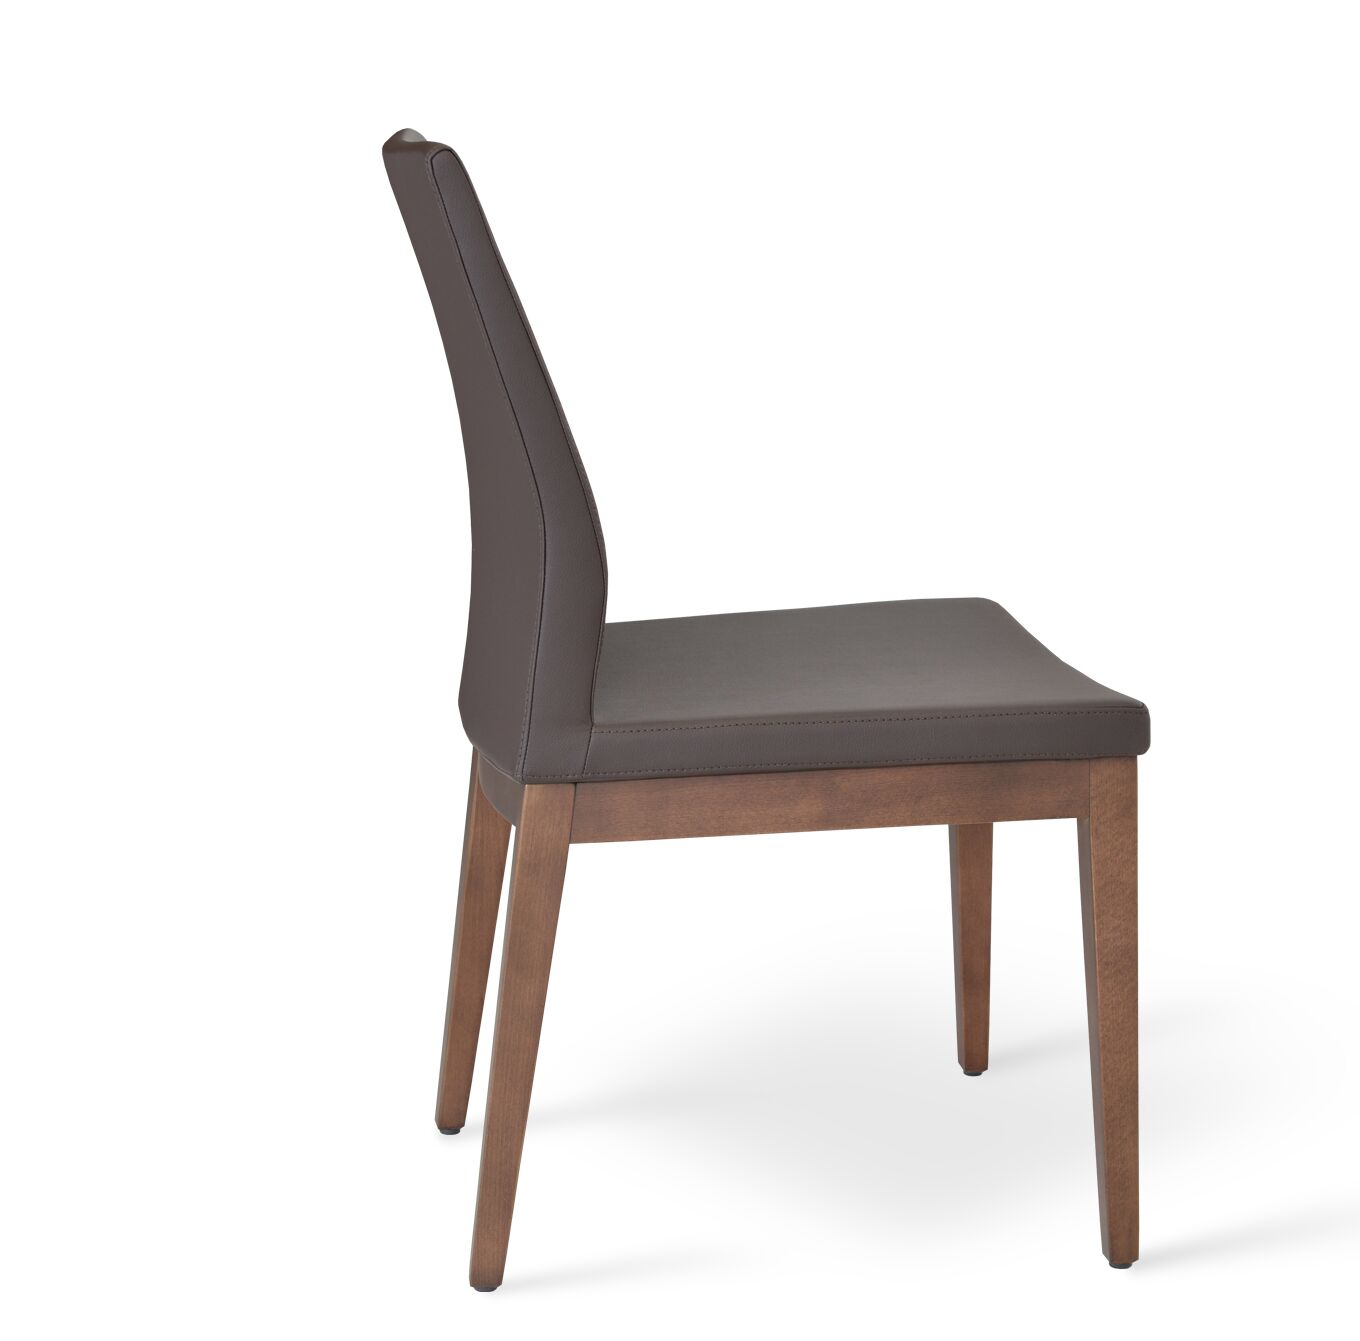 Pasha Side Chair in Leatherette Frame Color: Walnut, Upholstery Color: Brown